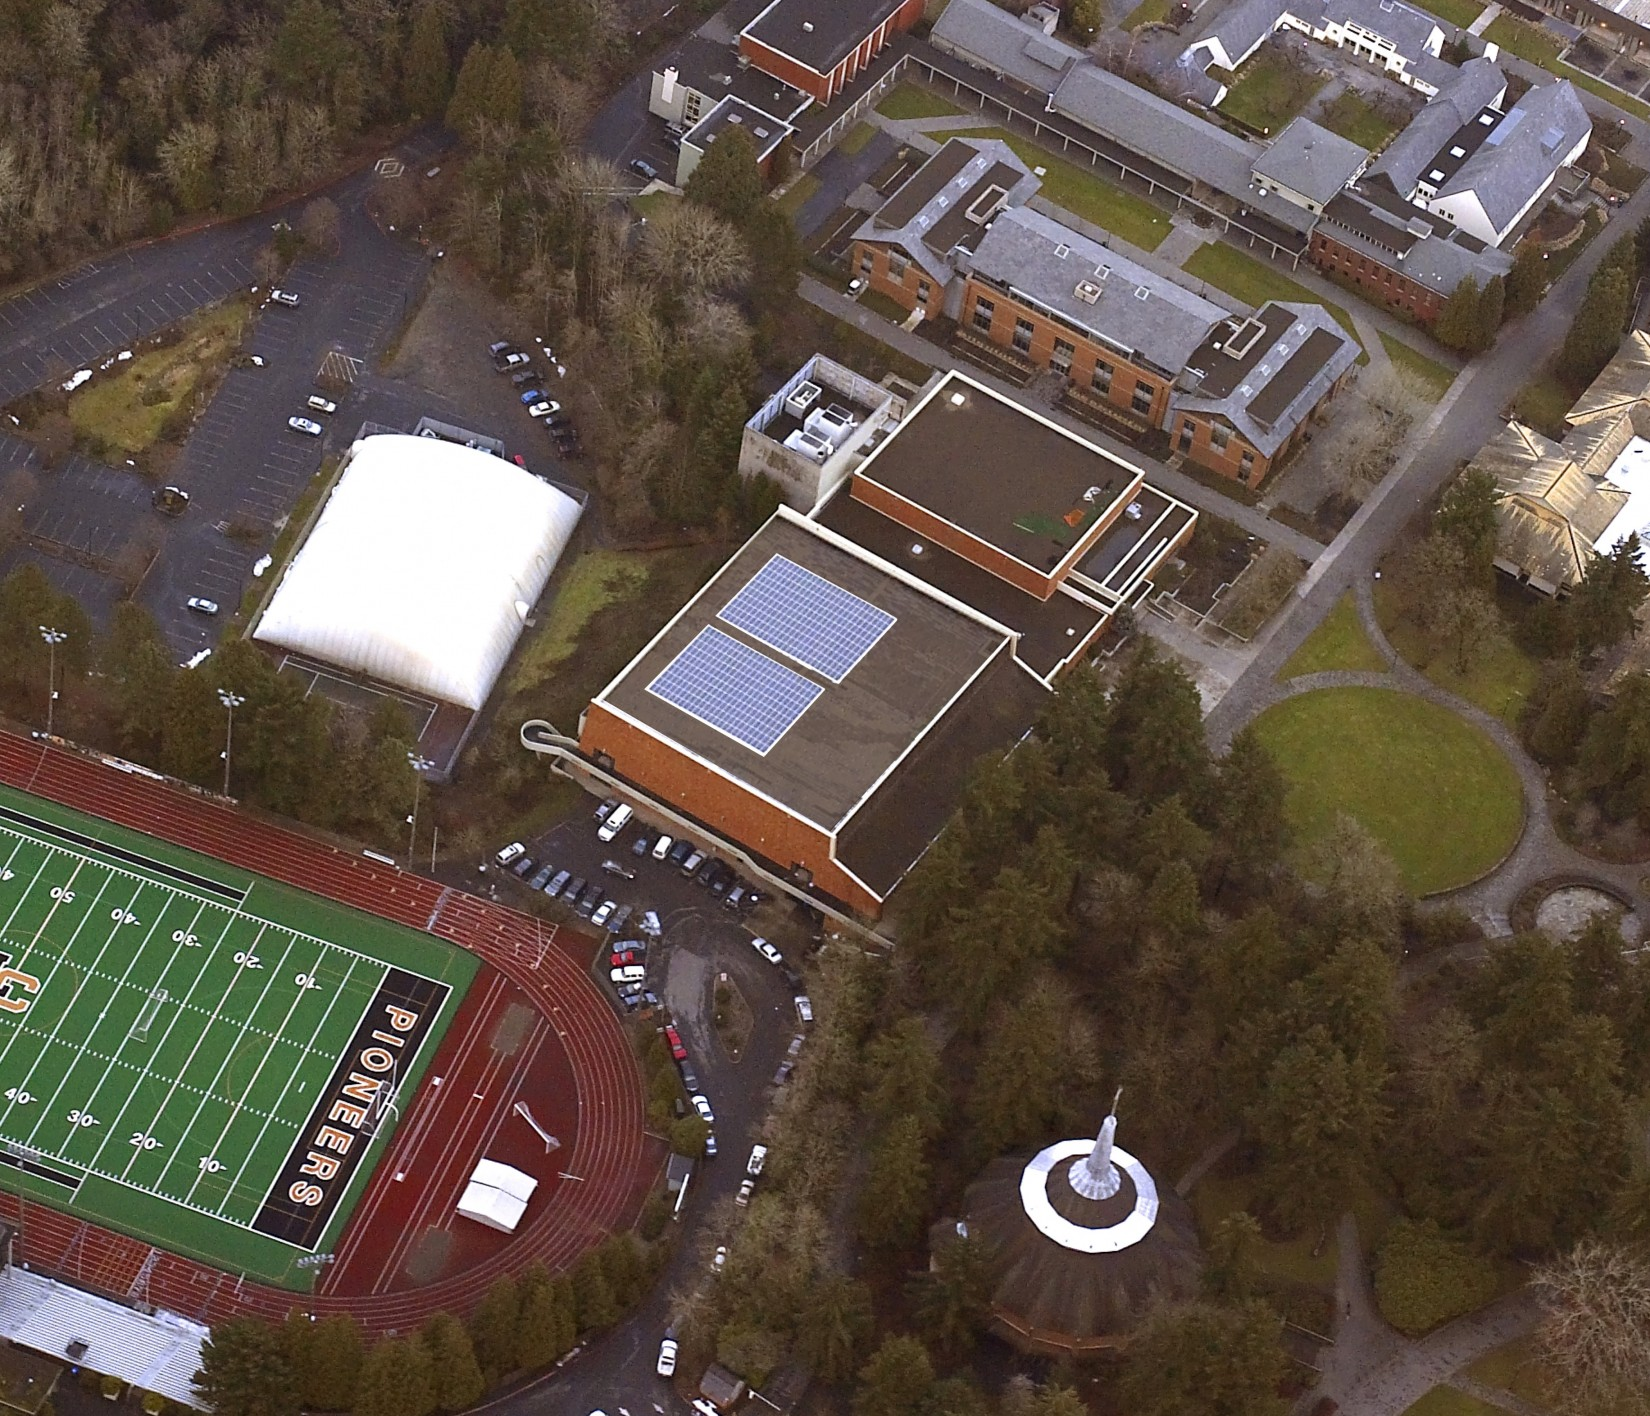 Lewis & Clark is partnering with Honeywell International, a technology and manufacturing company, to supply the campus sports facility with solar power.